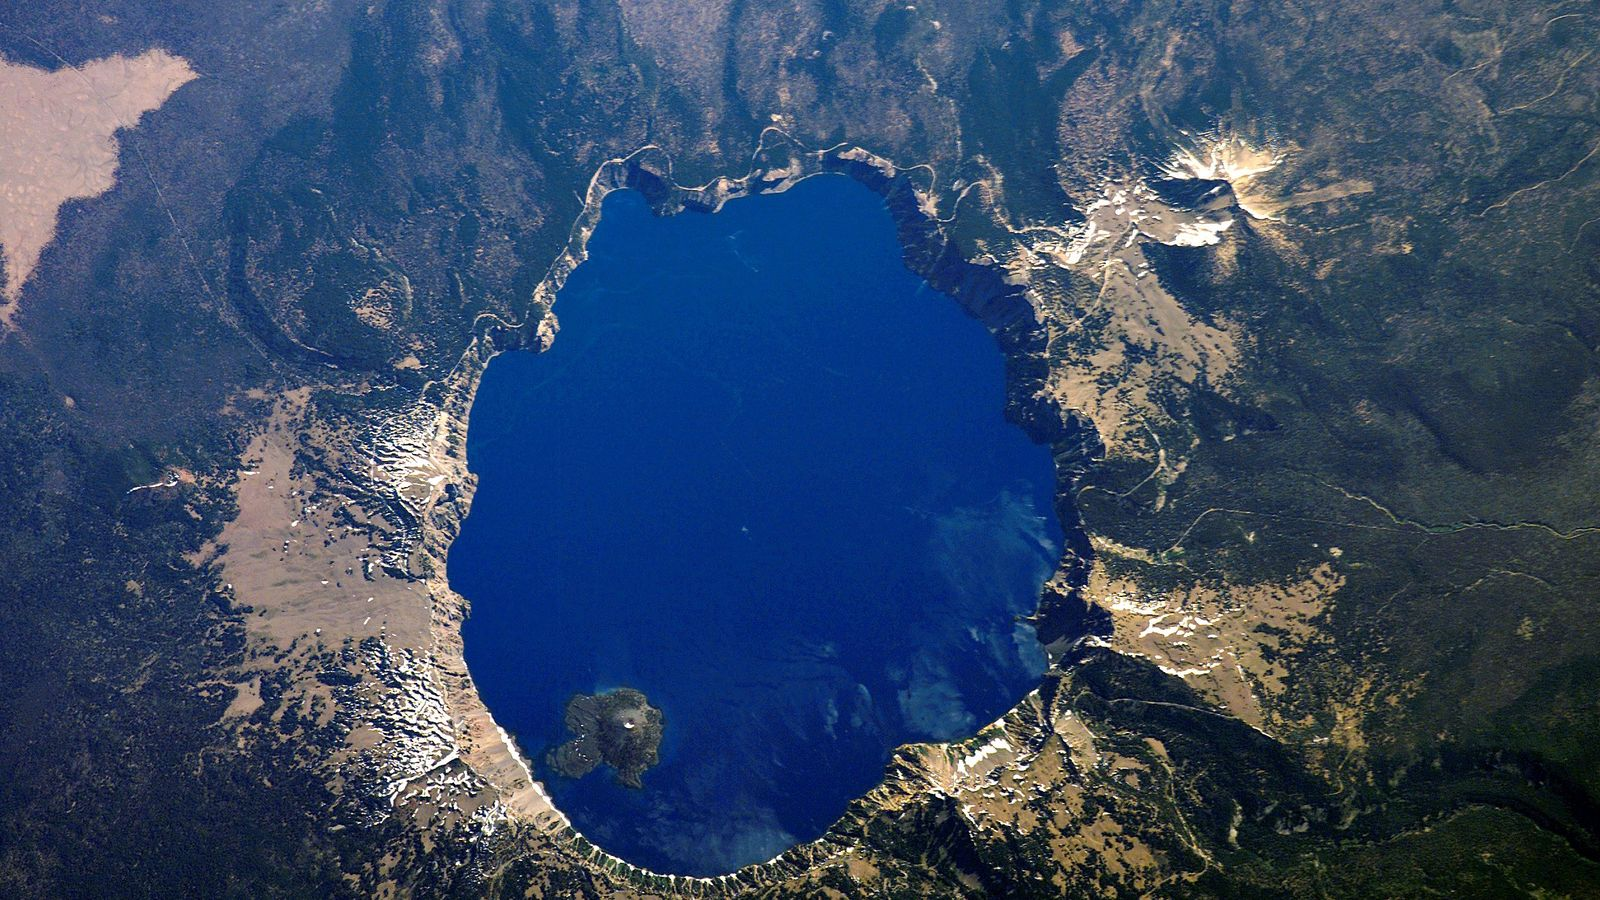 CRATER-LAKE-NATIONALPARK